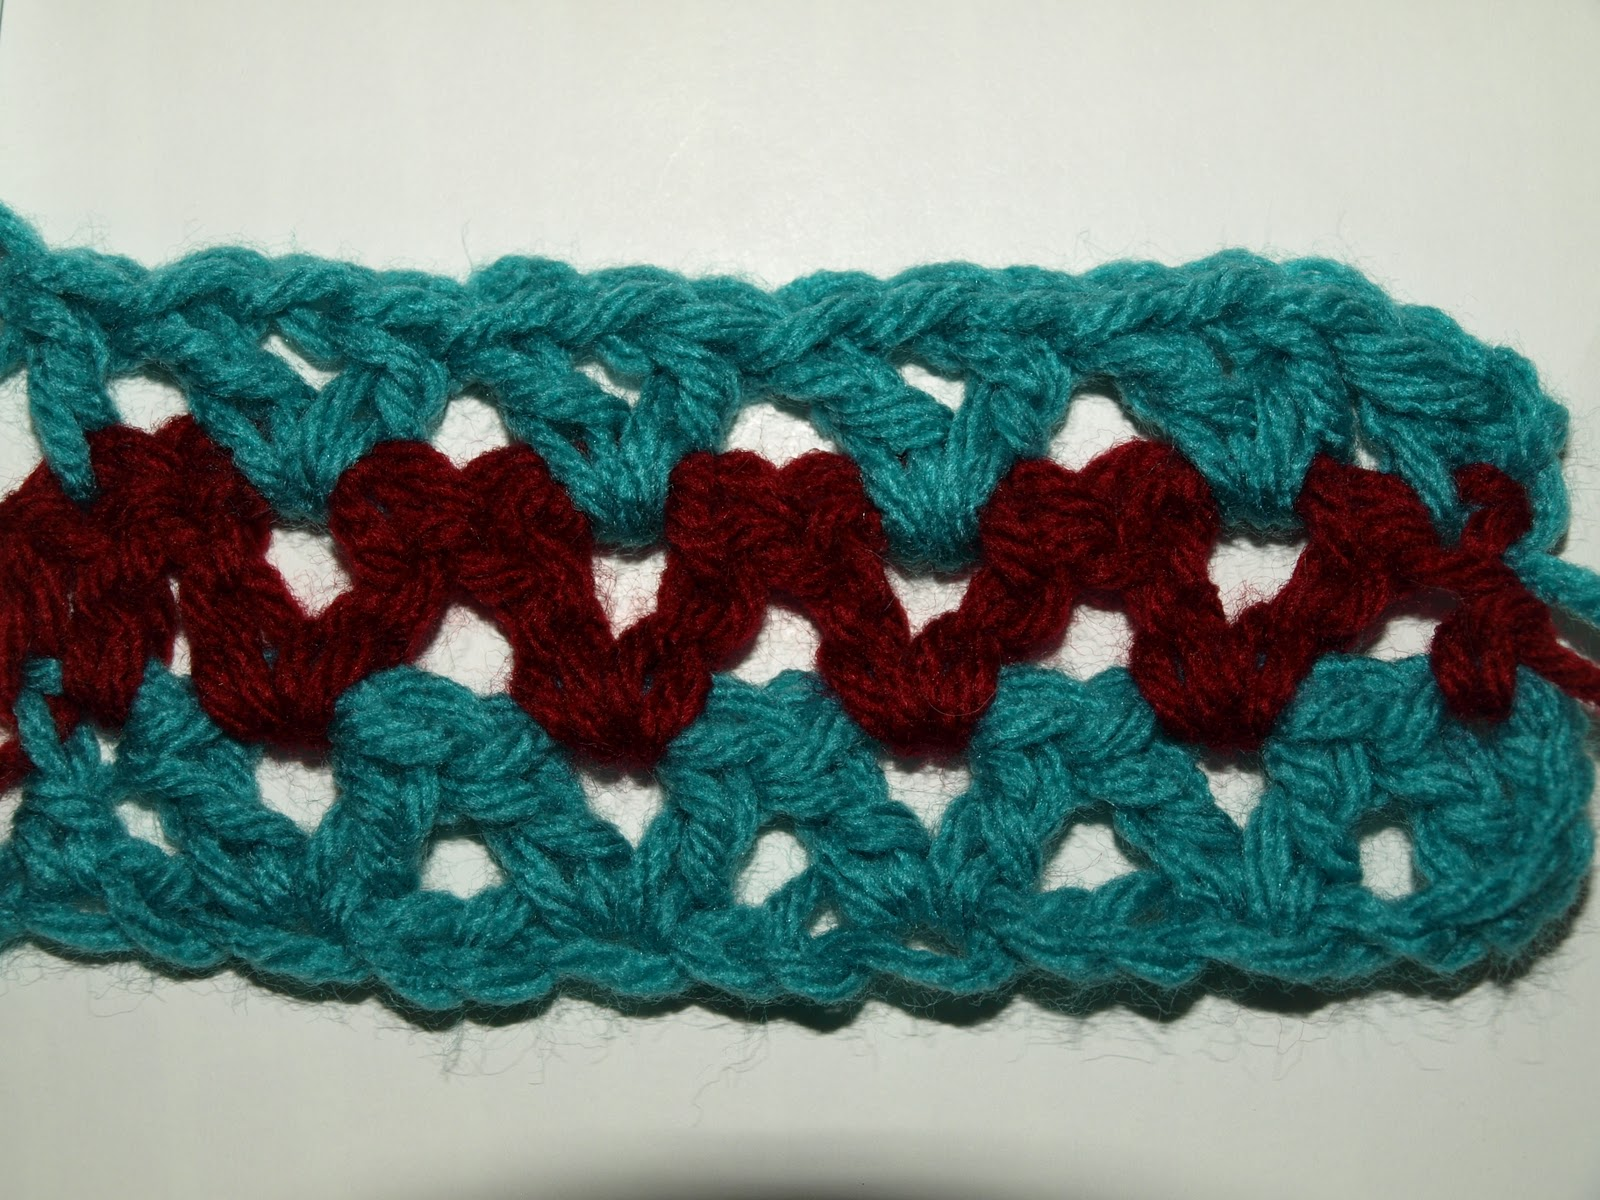 Crochet Stitches Double : CrochetByKarin: Double Crochet V Stitch